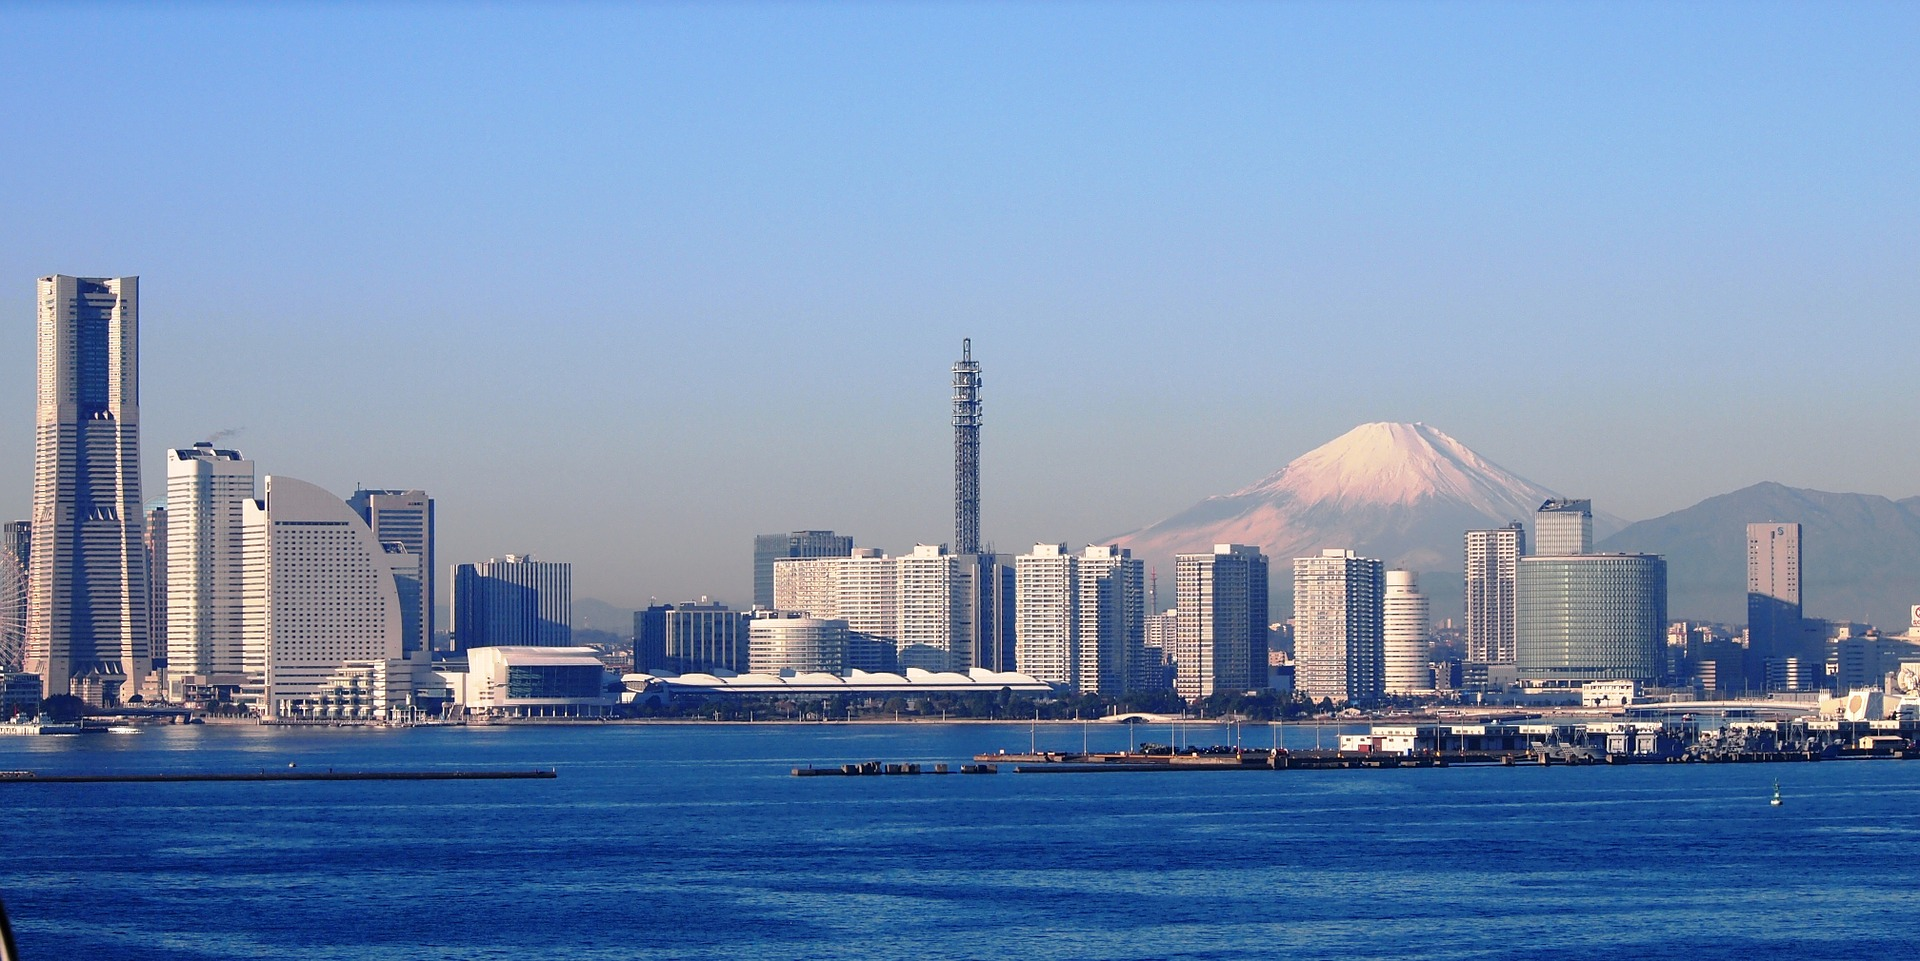 Yokohama, Japan with Mount Fuji in background